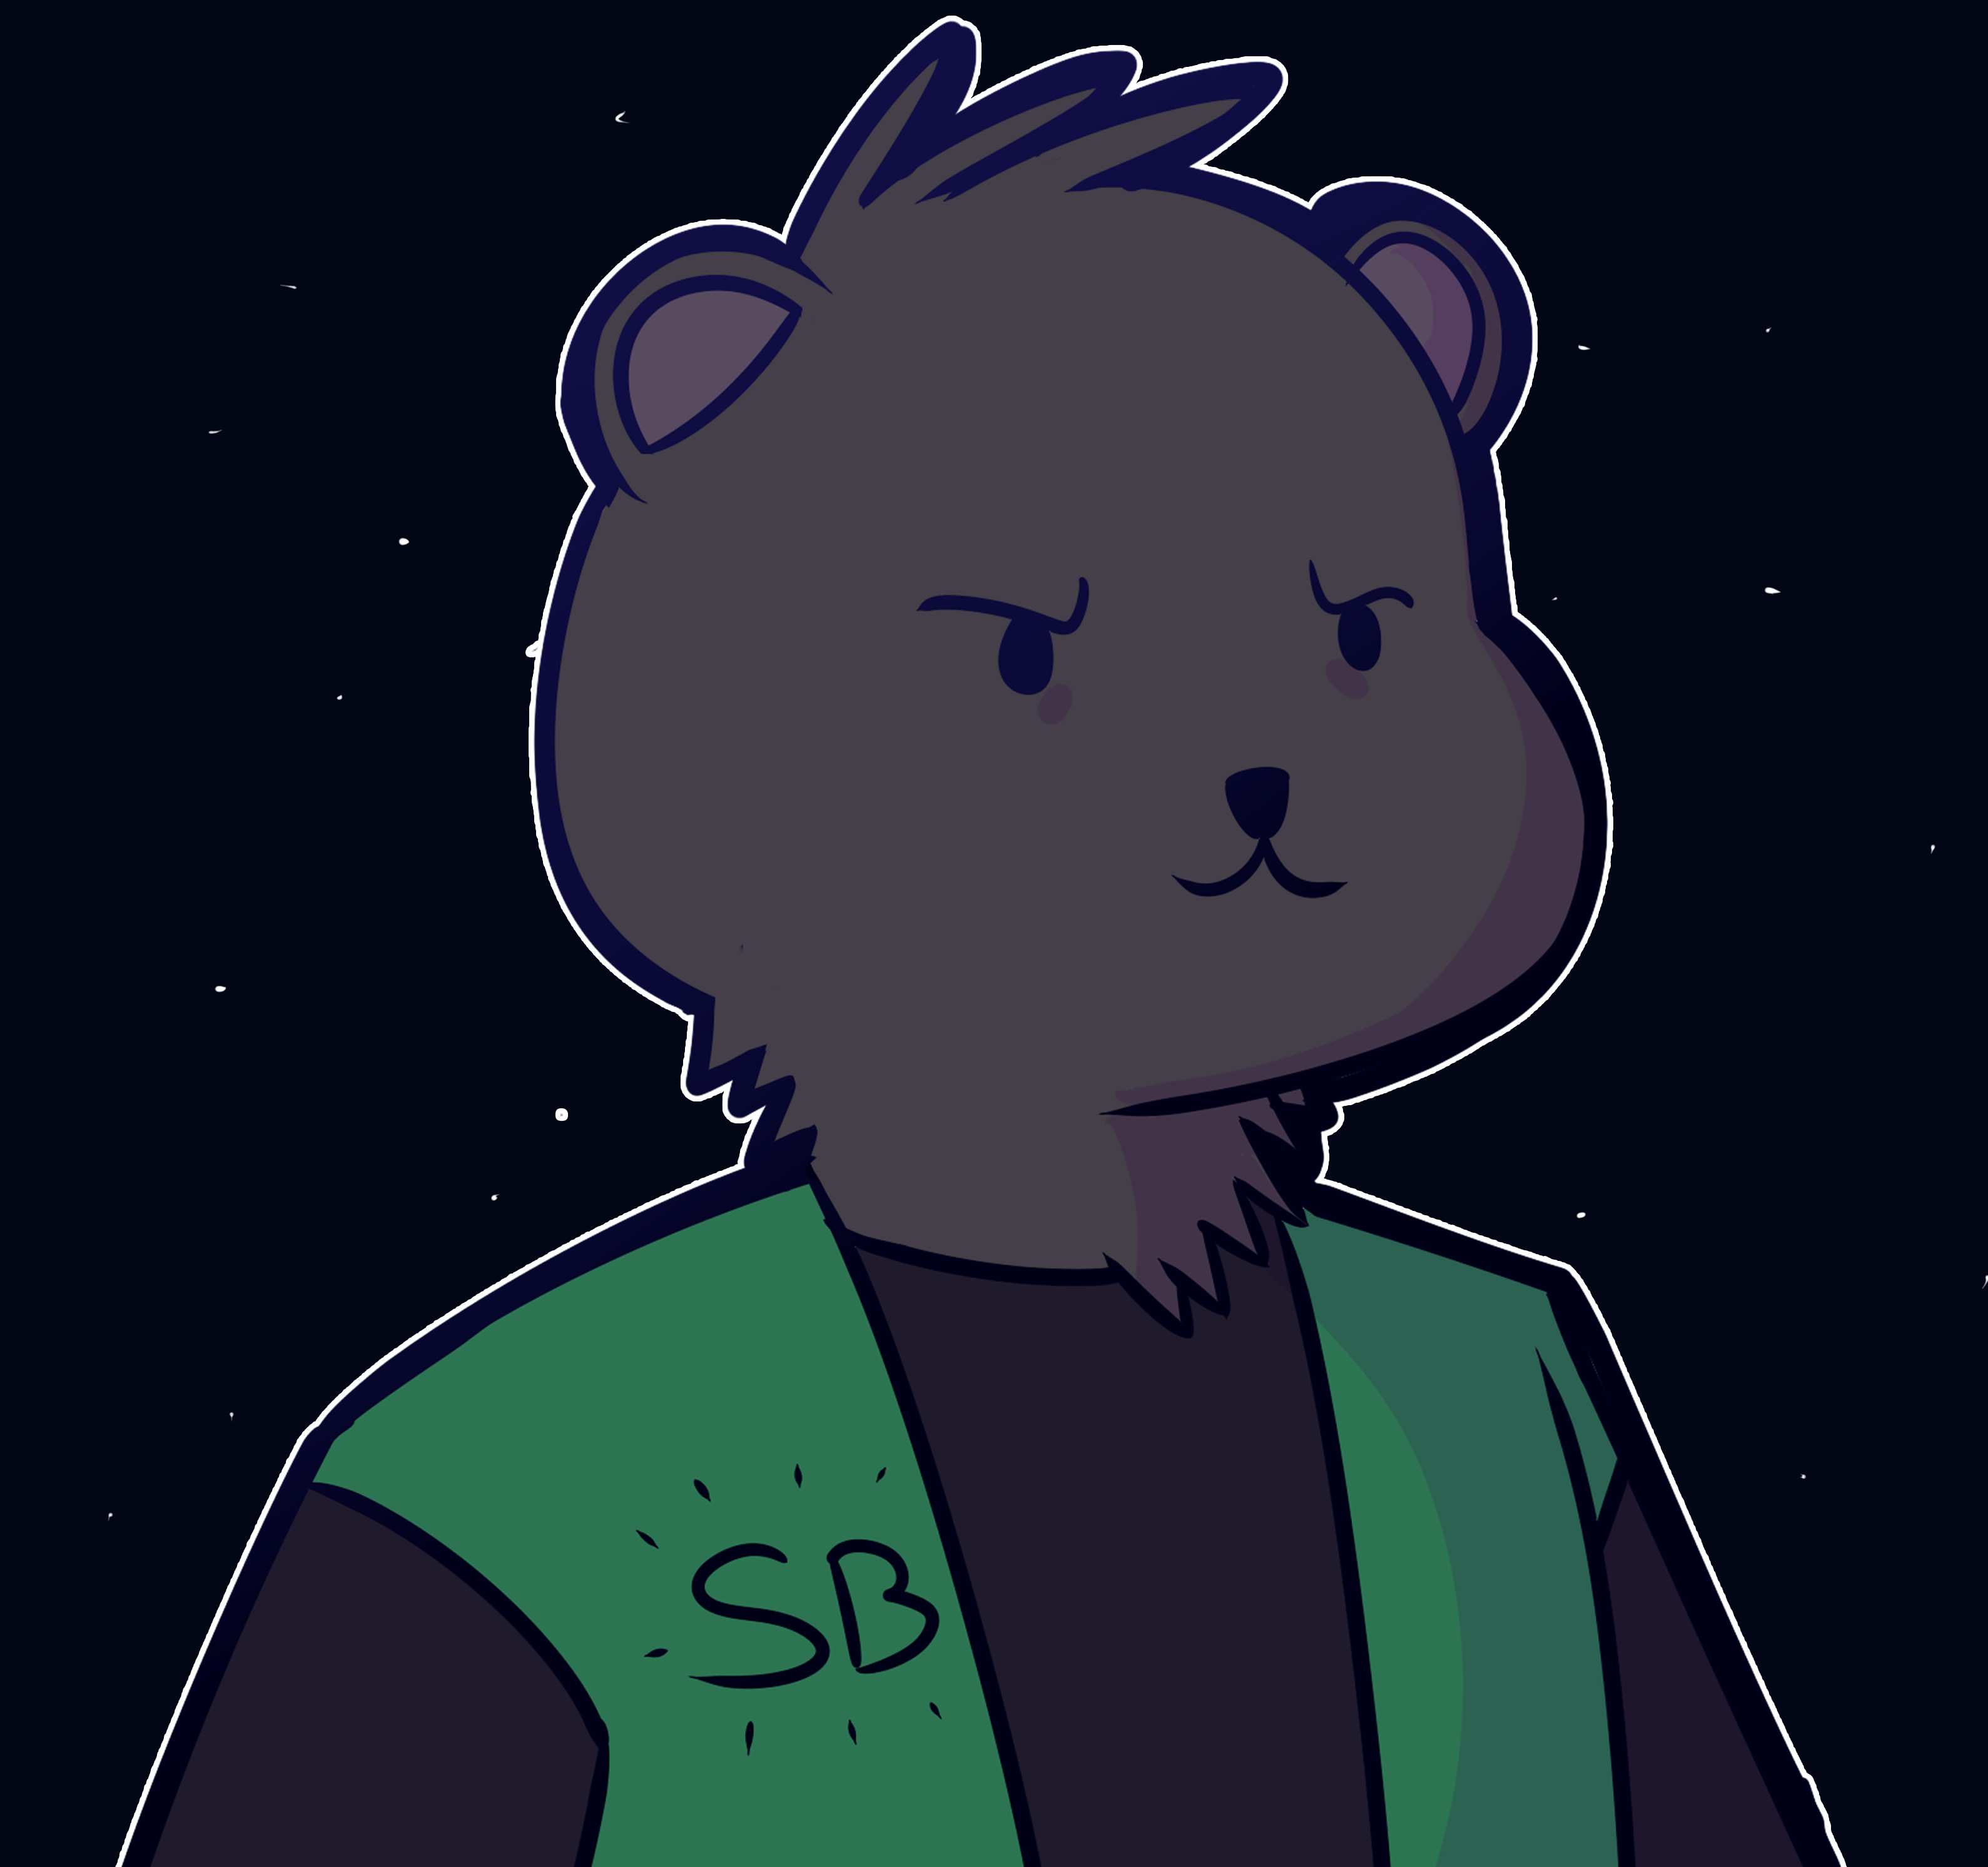 Commission Of a Bear Dude